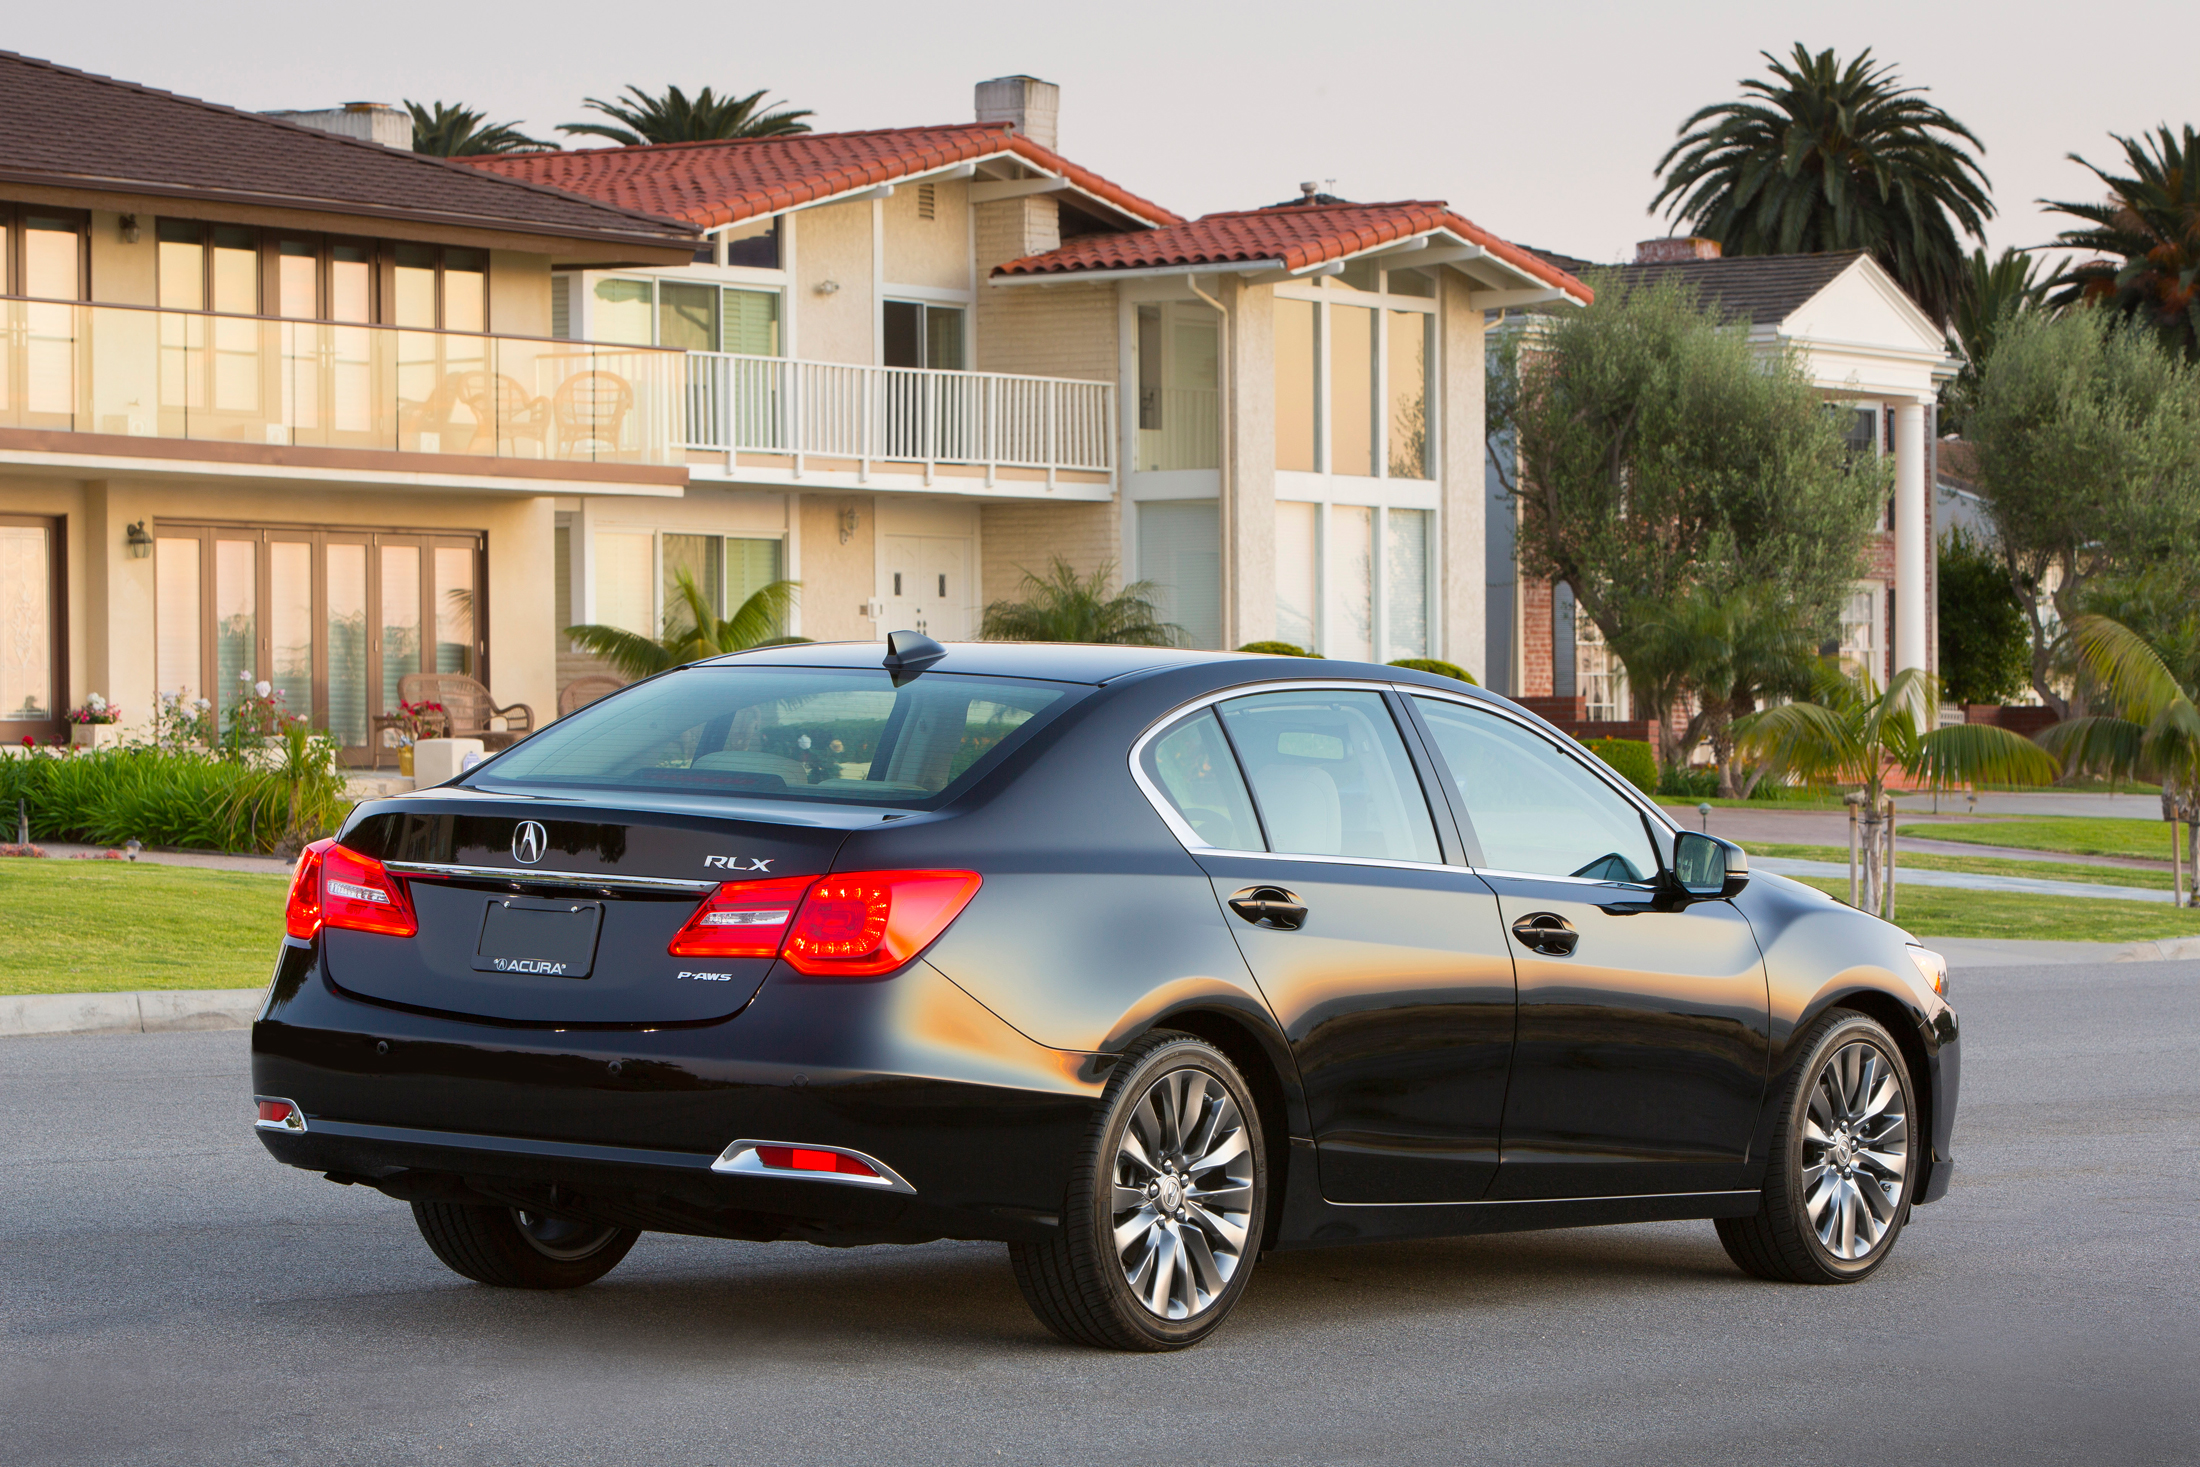 2016 Acura RLX Safety Ratings: Five Stars from NHTSA » AutoGuide.com ...